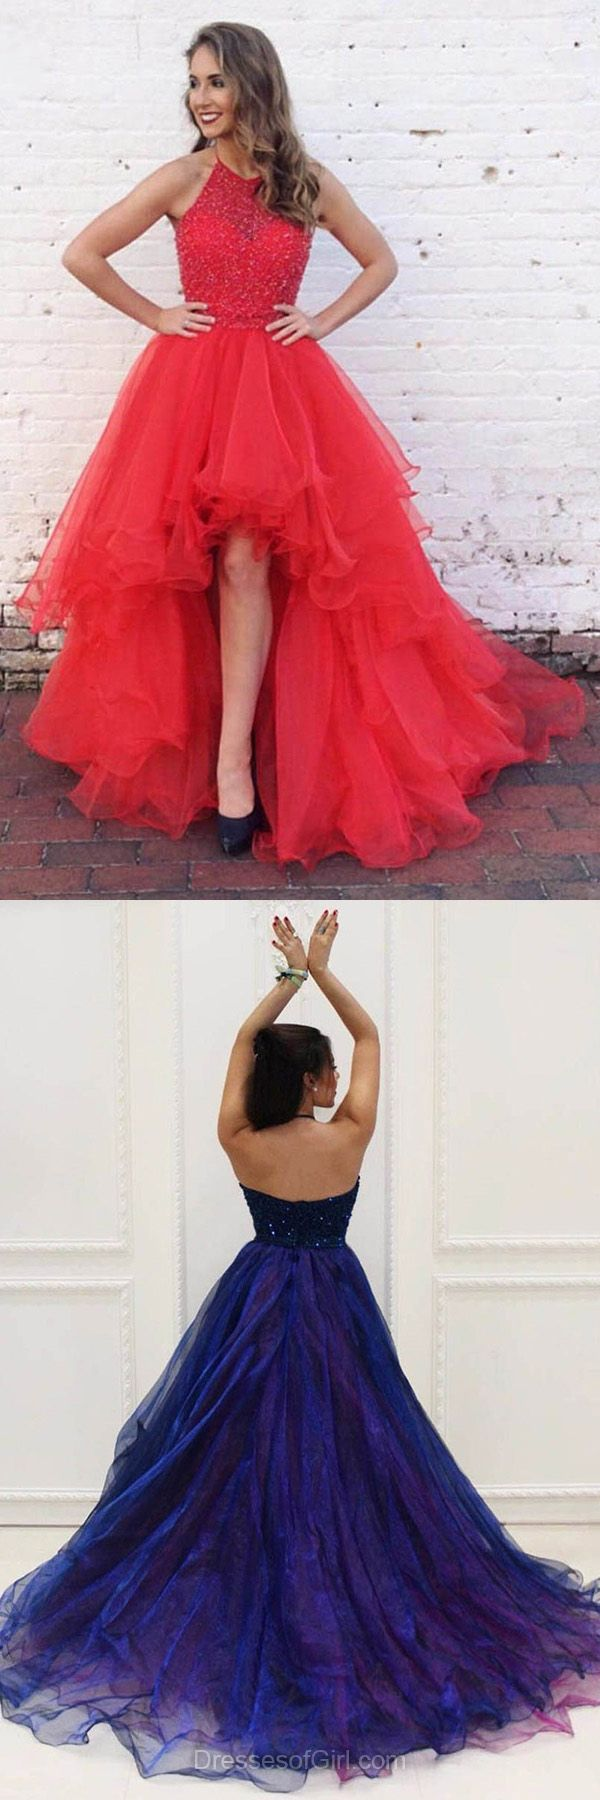 Princess Halter Organza Asymmetrical Beading Red Backless High Low Modern Prom Dresses #DGD020103198